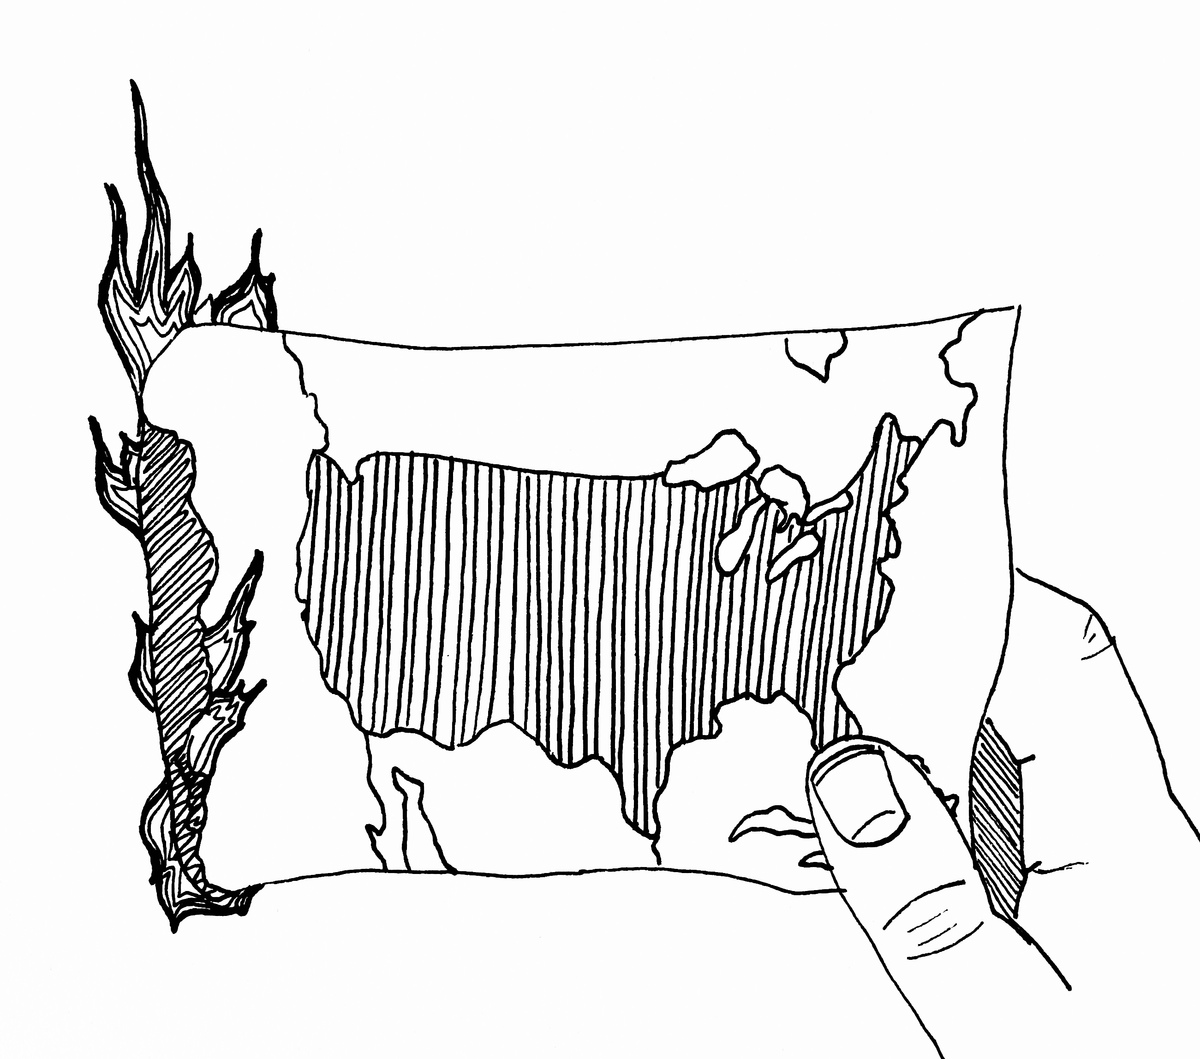 Picture of burning United States map.